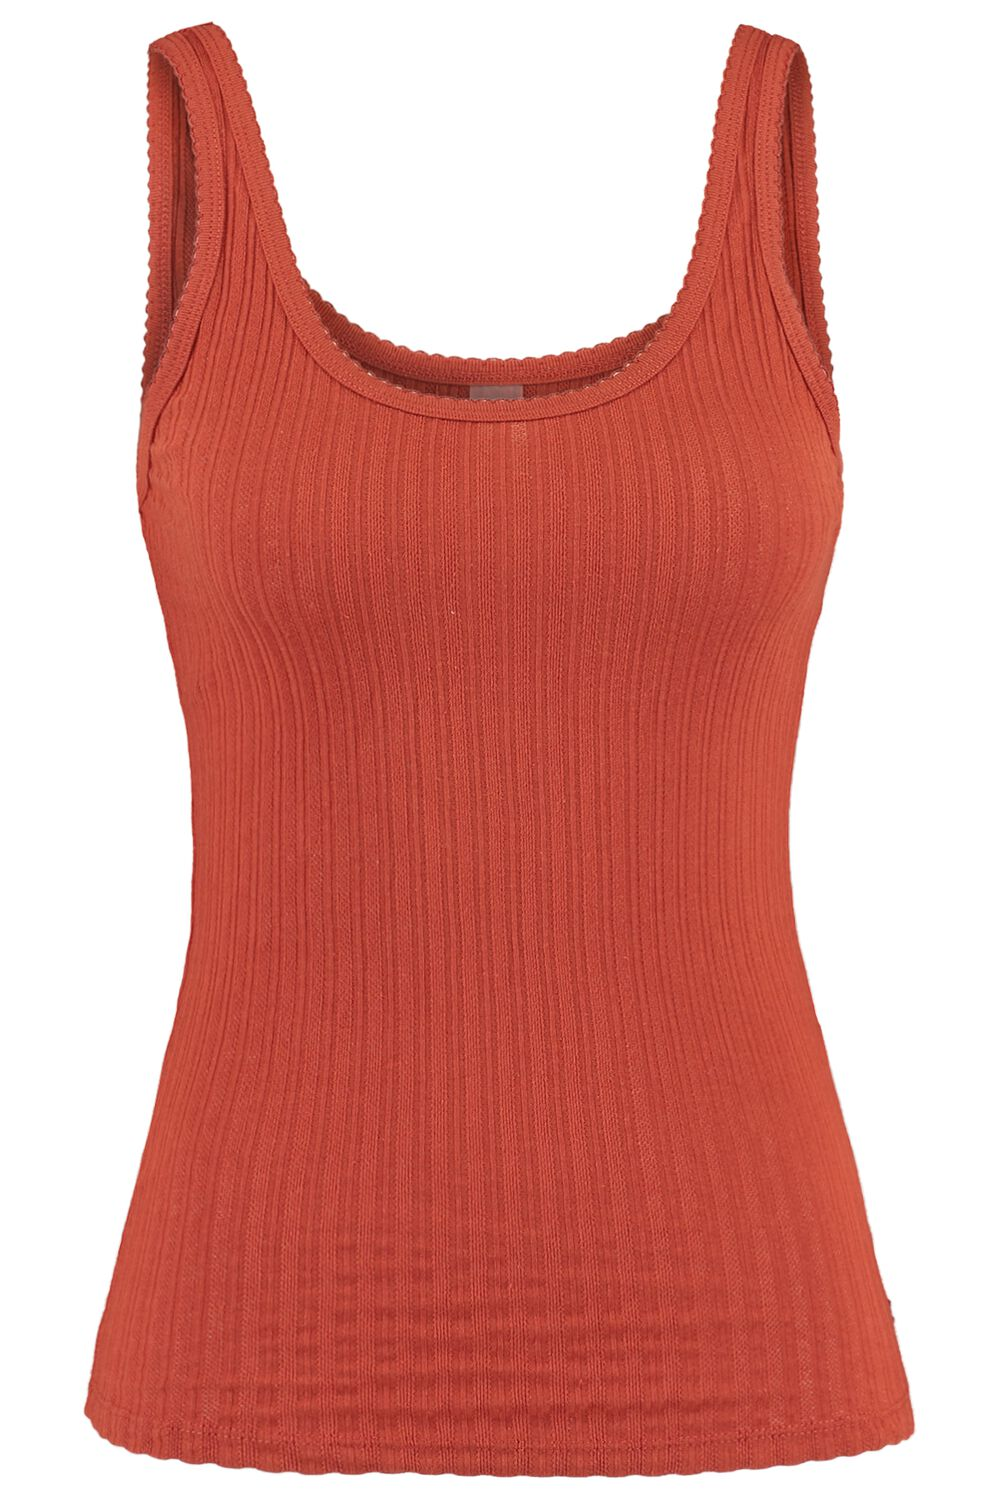 America Today Dames Singlet Gaby Rood